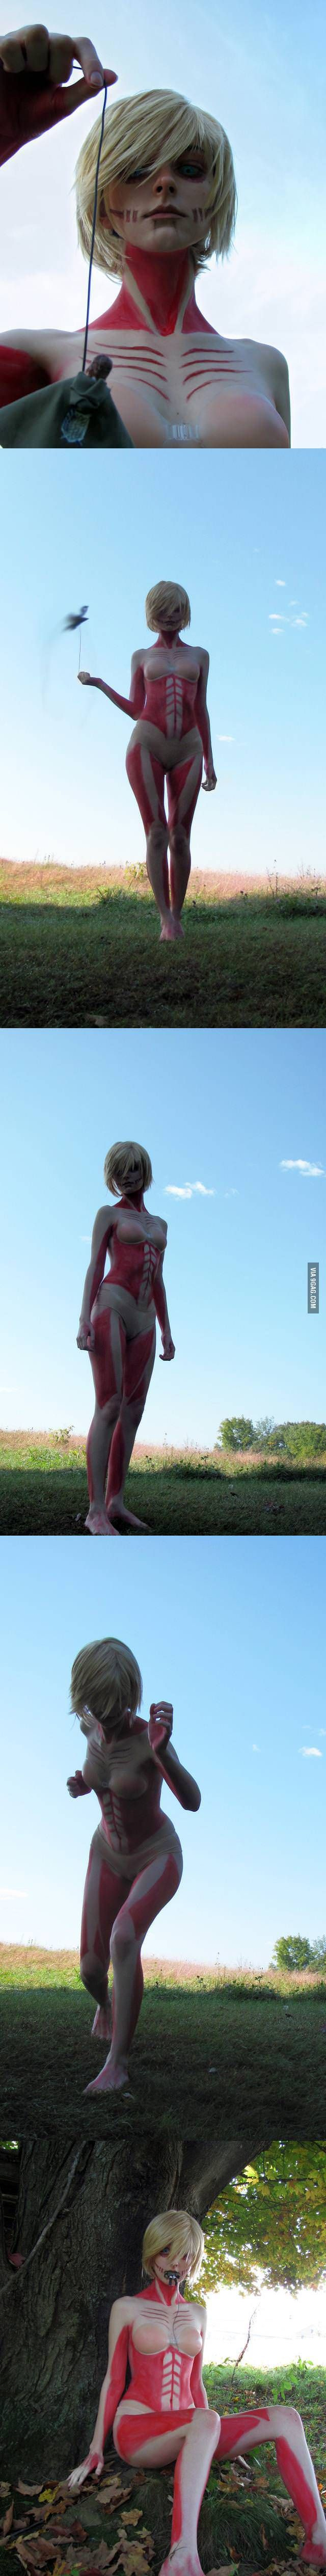 Amazing Attack on Titan cosplay. She looks spectacularly menacing as the Female Titan.